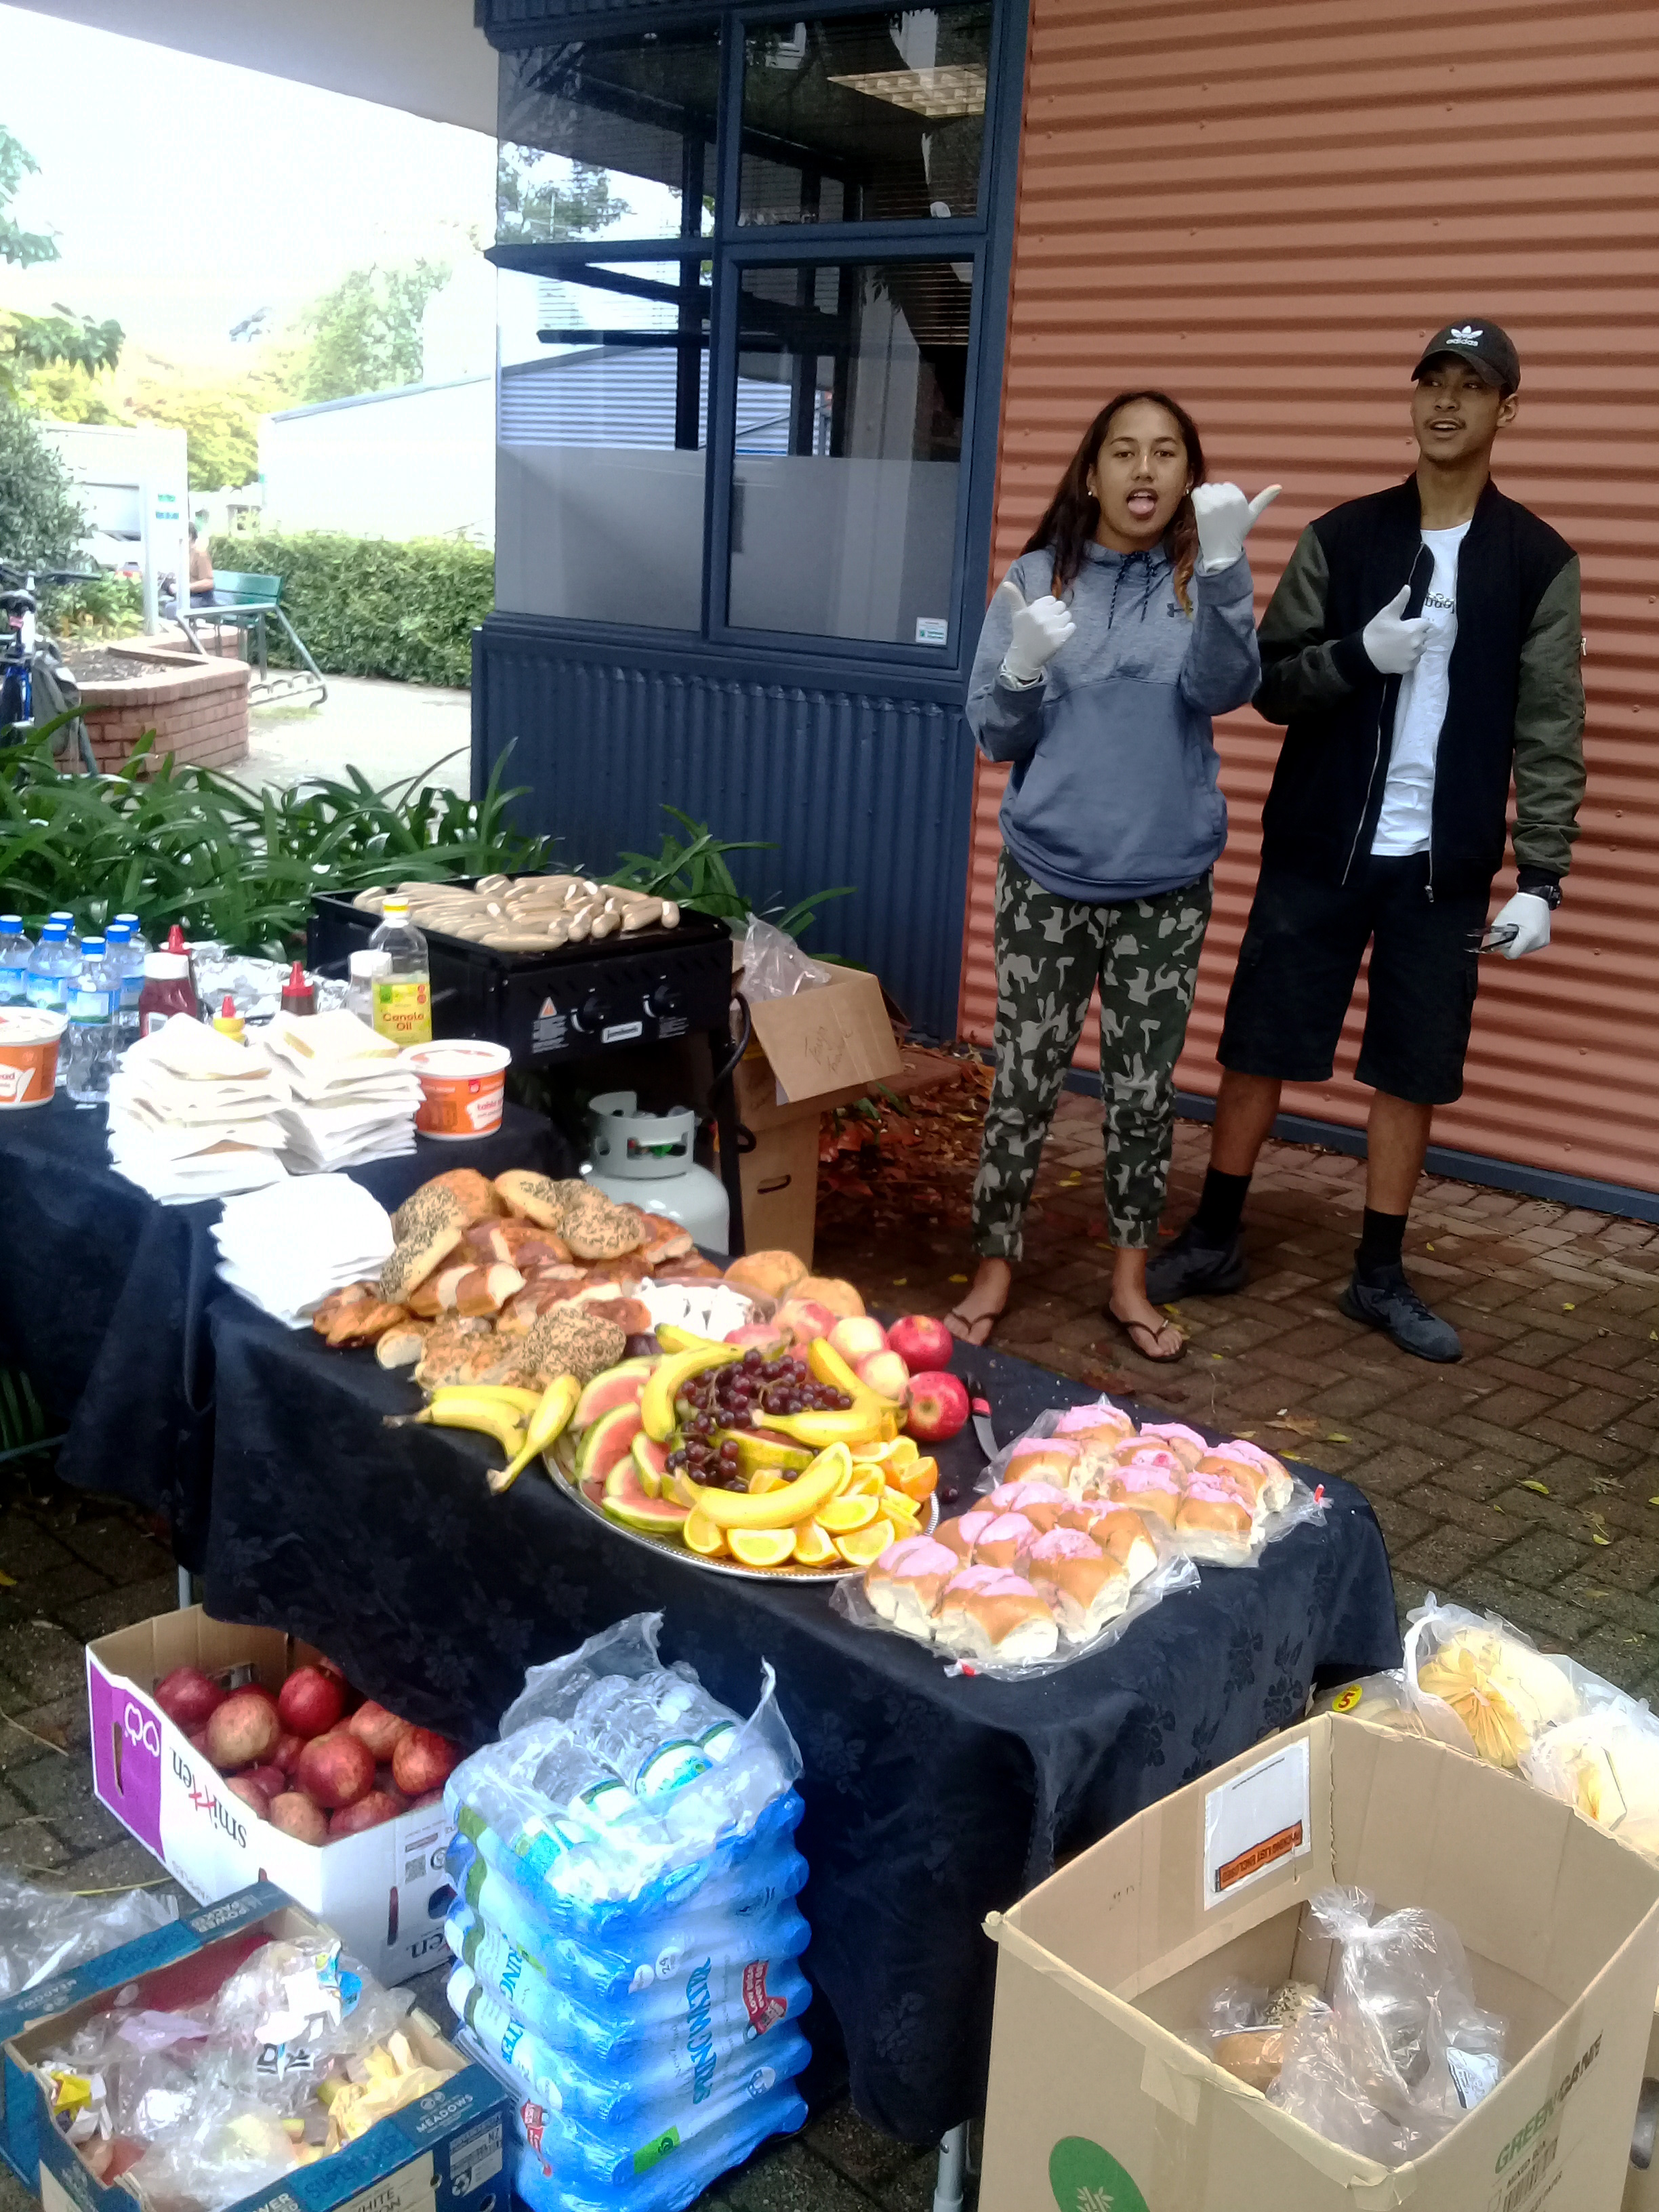 An abundance of great food laid out for rangatahi which included chicken, fresh fruits and bread as well as refreshing water.